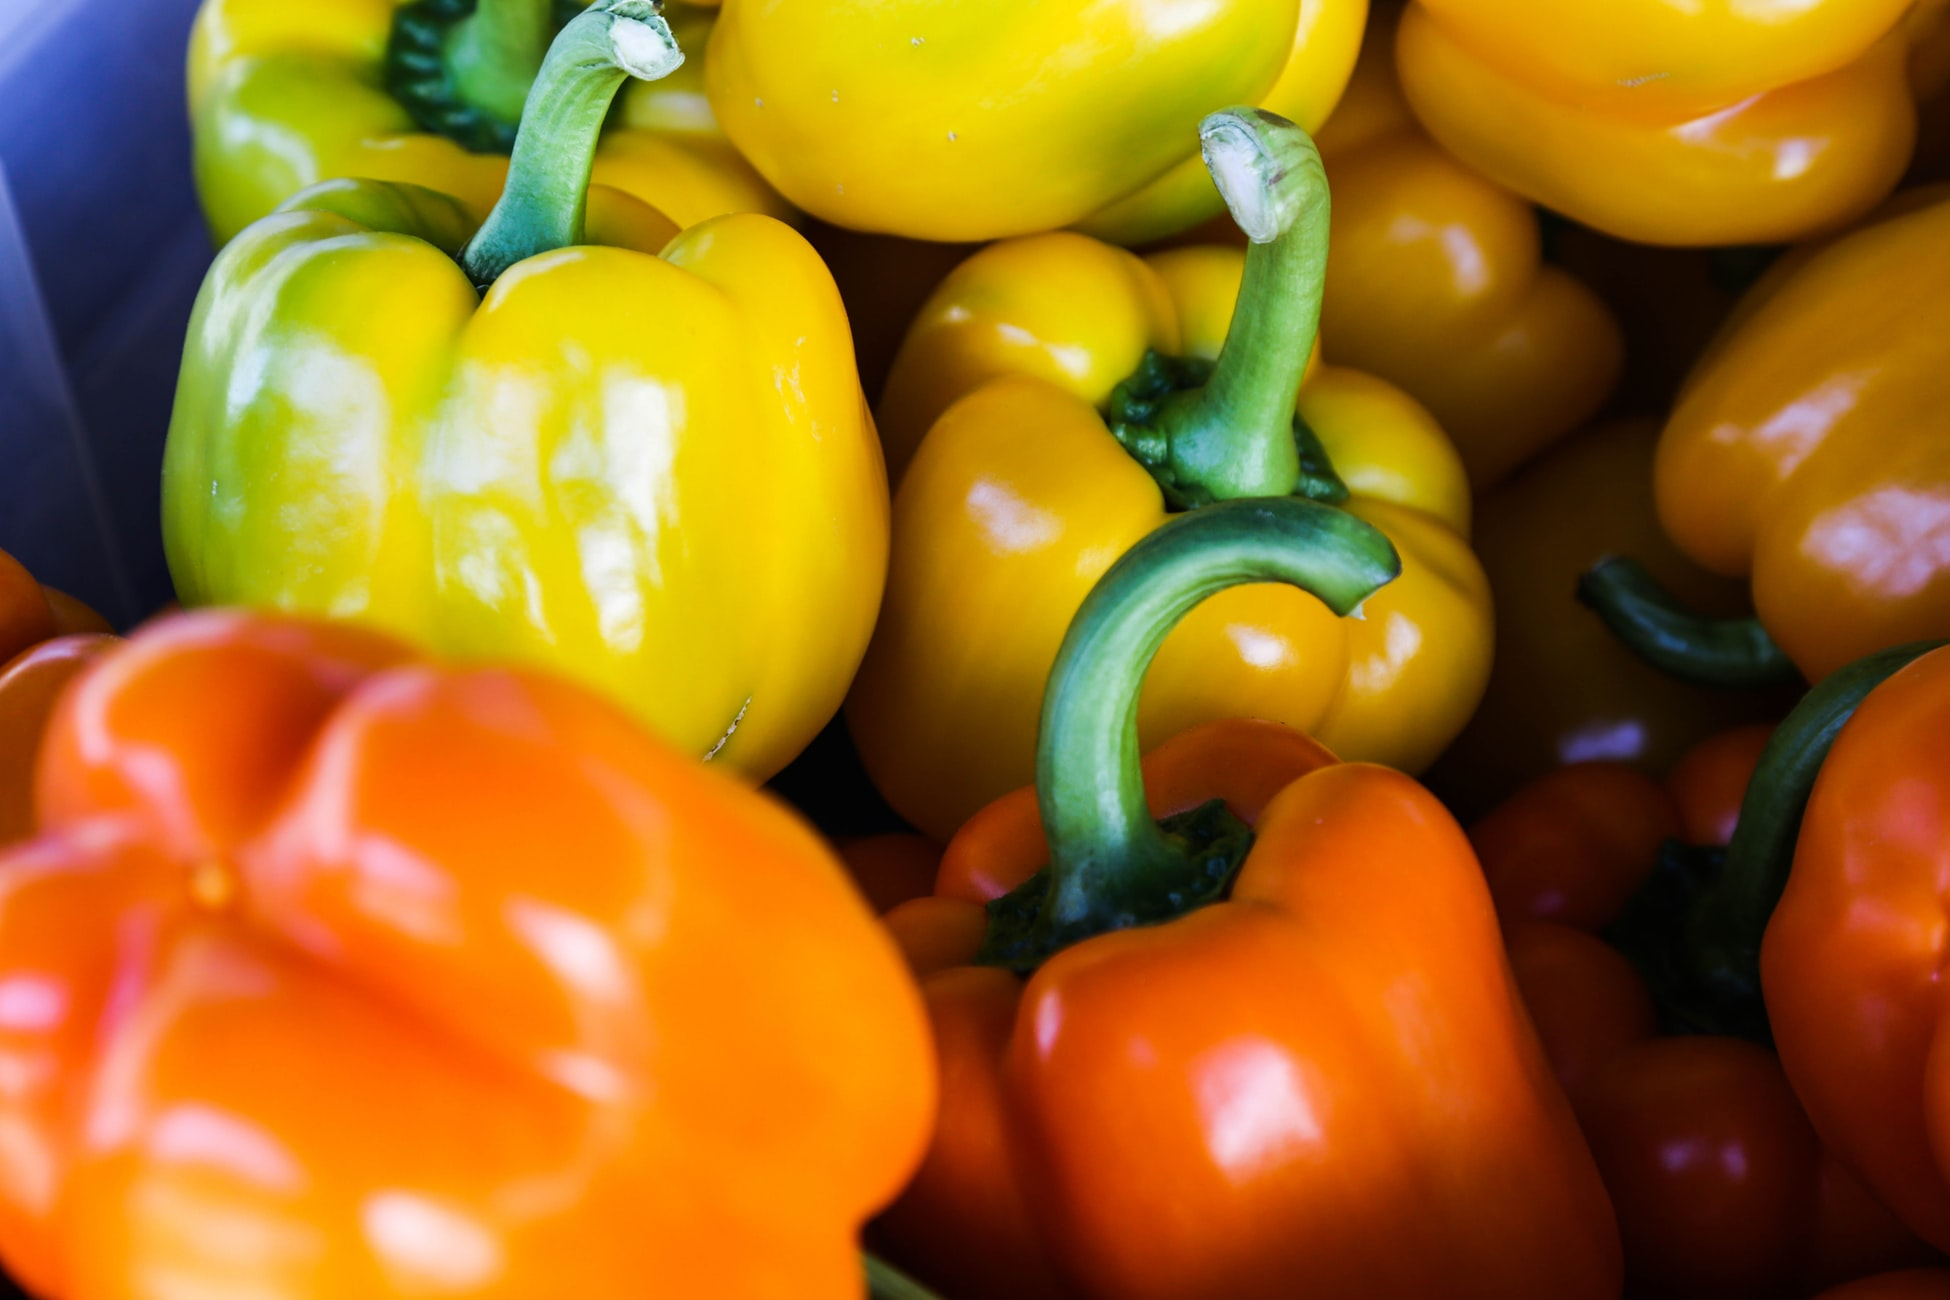 Bell peppers are full of skin-boosting vitamins and nutrients.